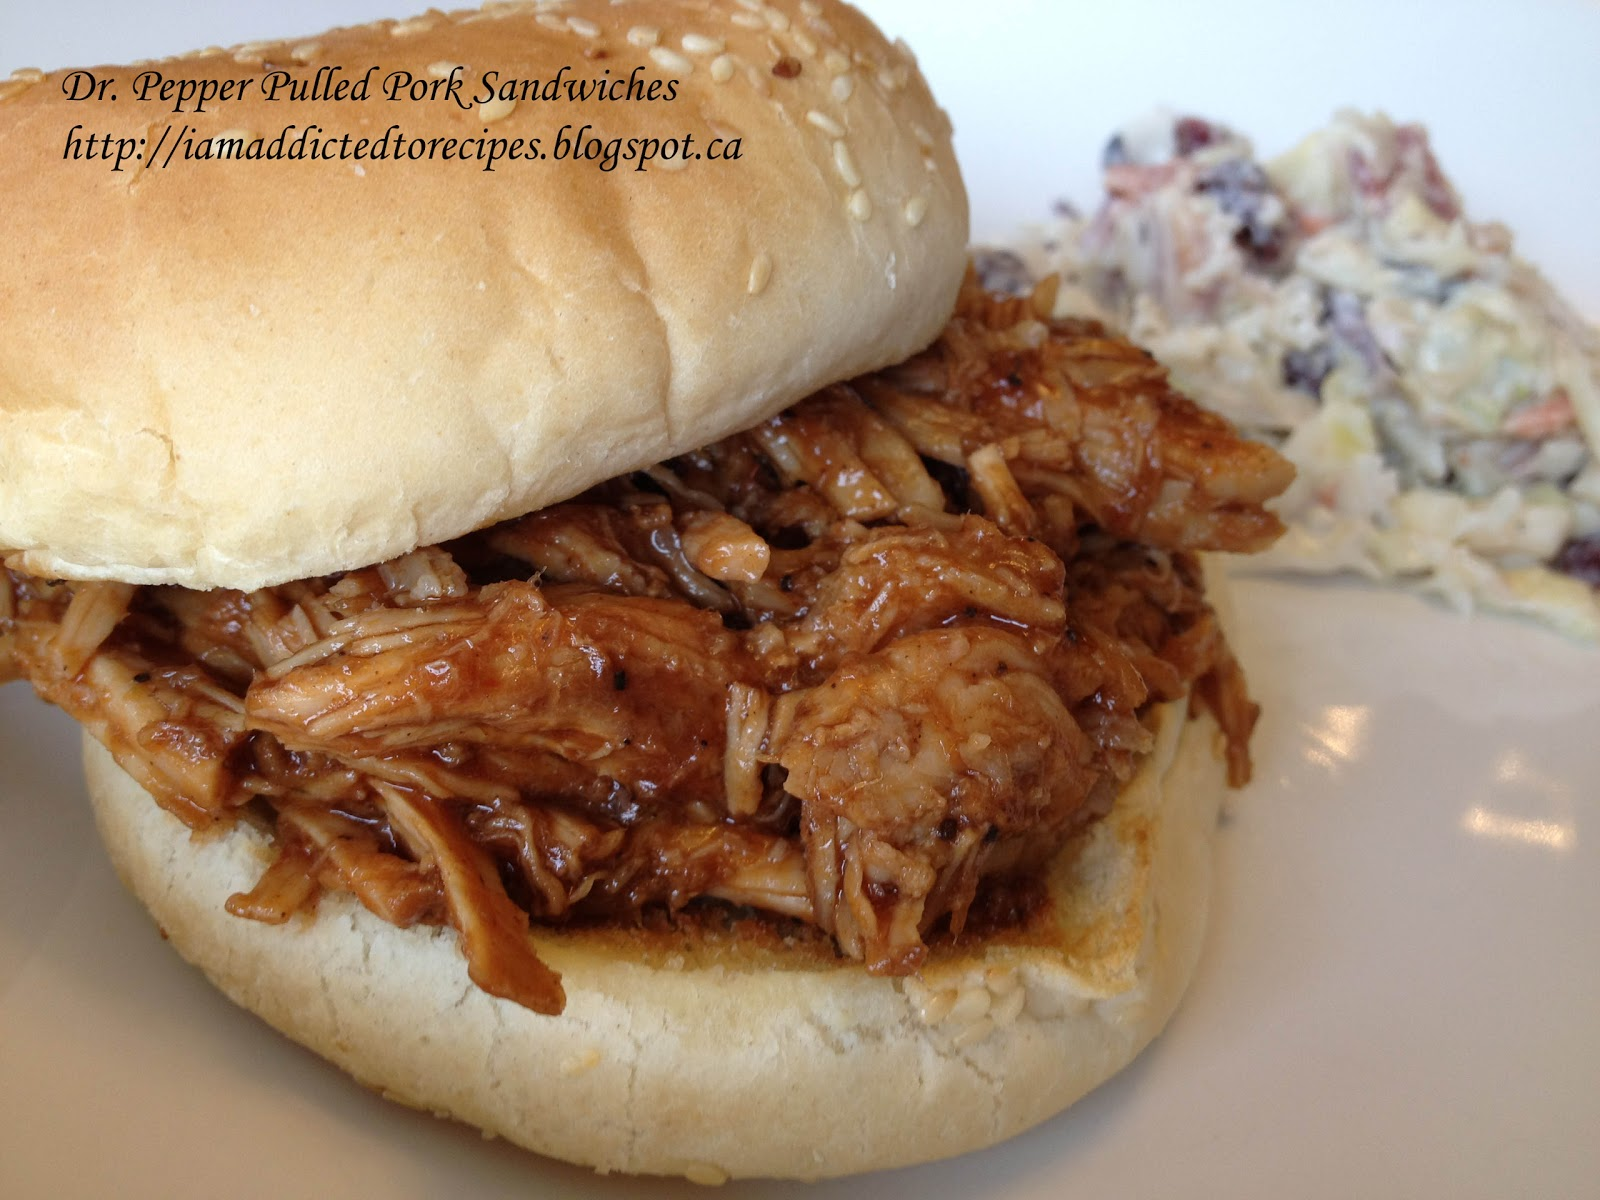 Dr. Pepper Pulled Pork Sandwiches